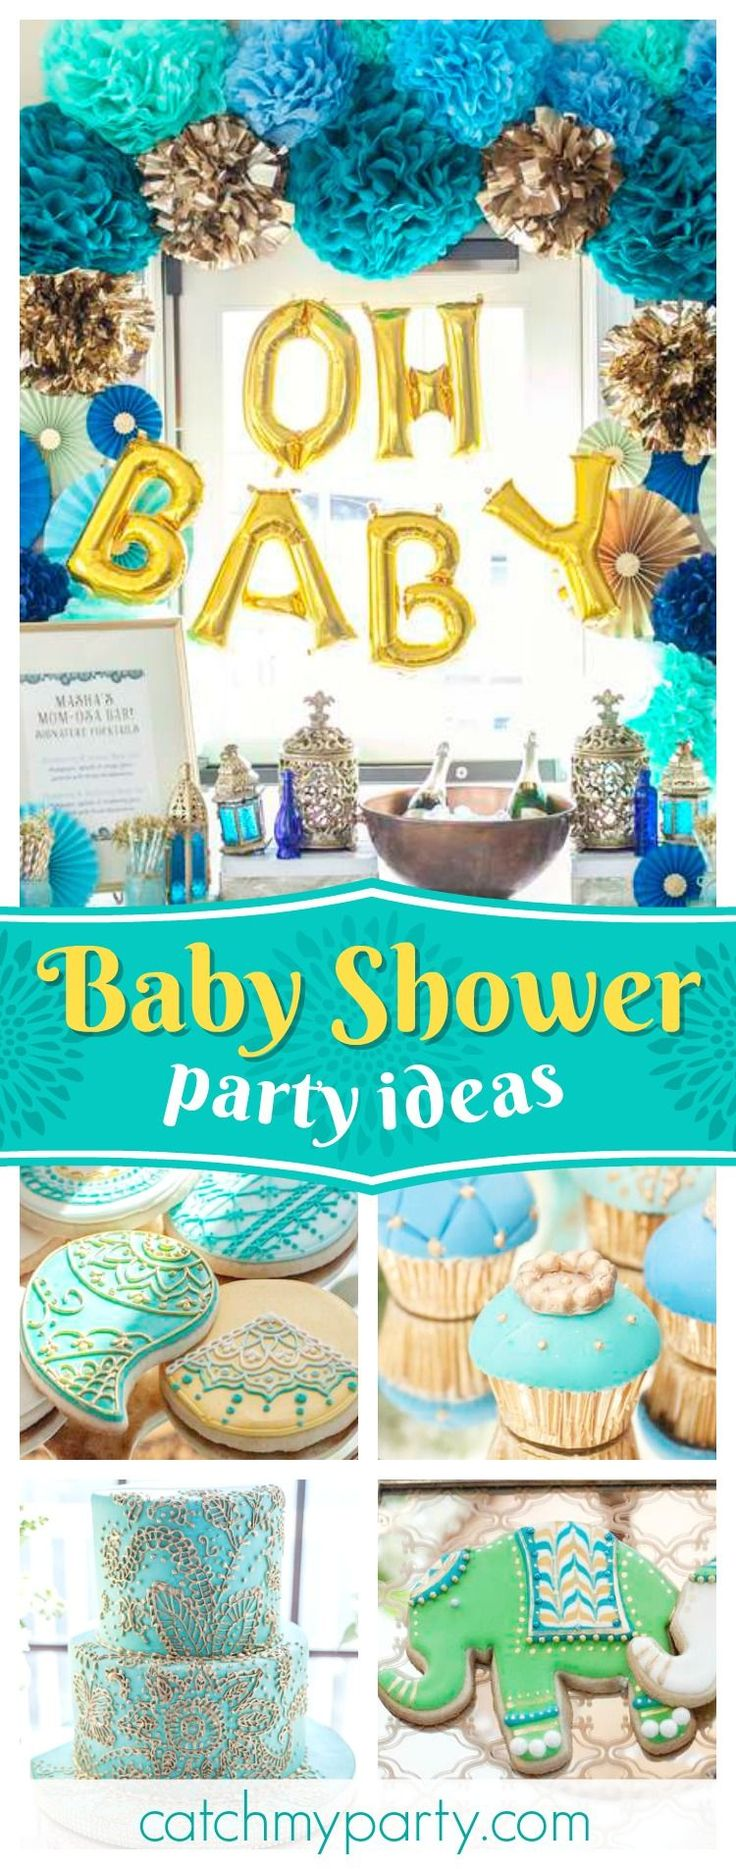 Be inspired by this stunning Blue Indian Baby Shower! The decorated cookies are gorgeous!! See more party ideas and share yours at CatchMyParty.com #partyideas #catchmyparty #indian #babyshower